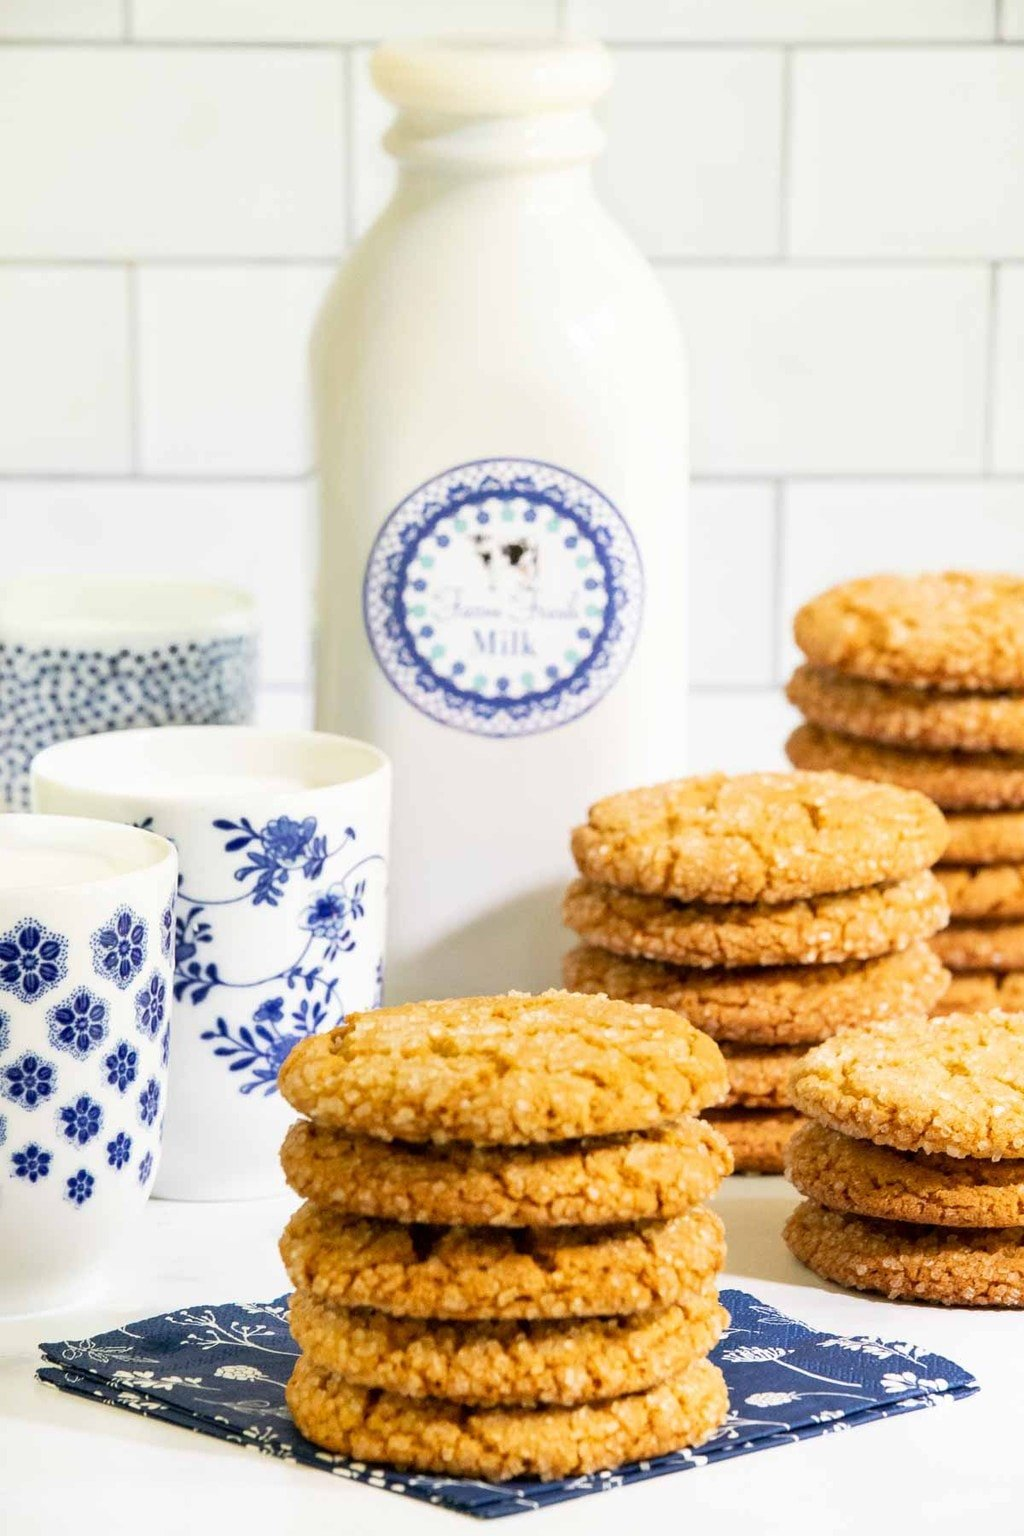 Vertical photo of stacks of Crinkly Crackly Peanut Butter Cookies with a quart and glasses of milk in the background.